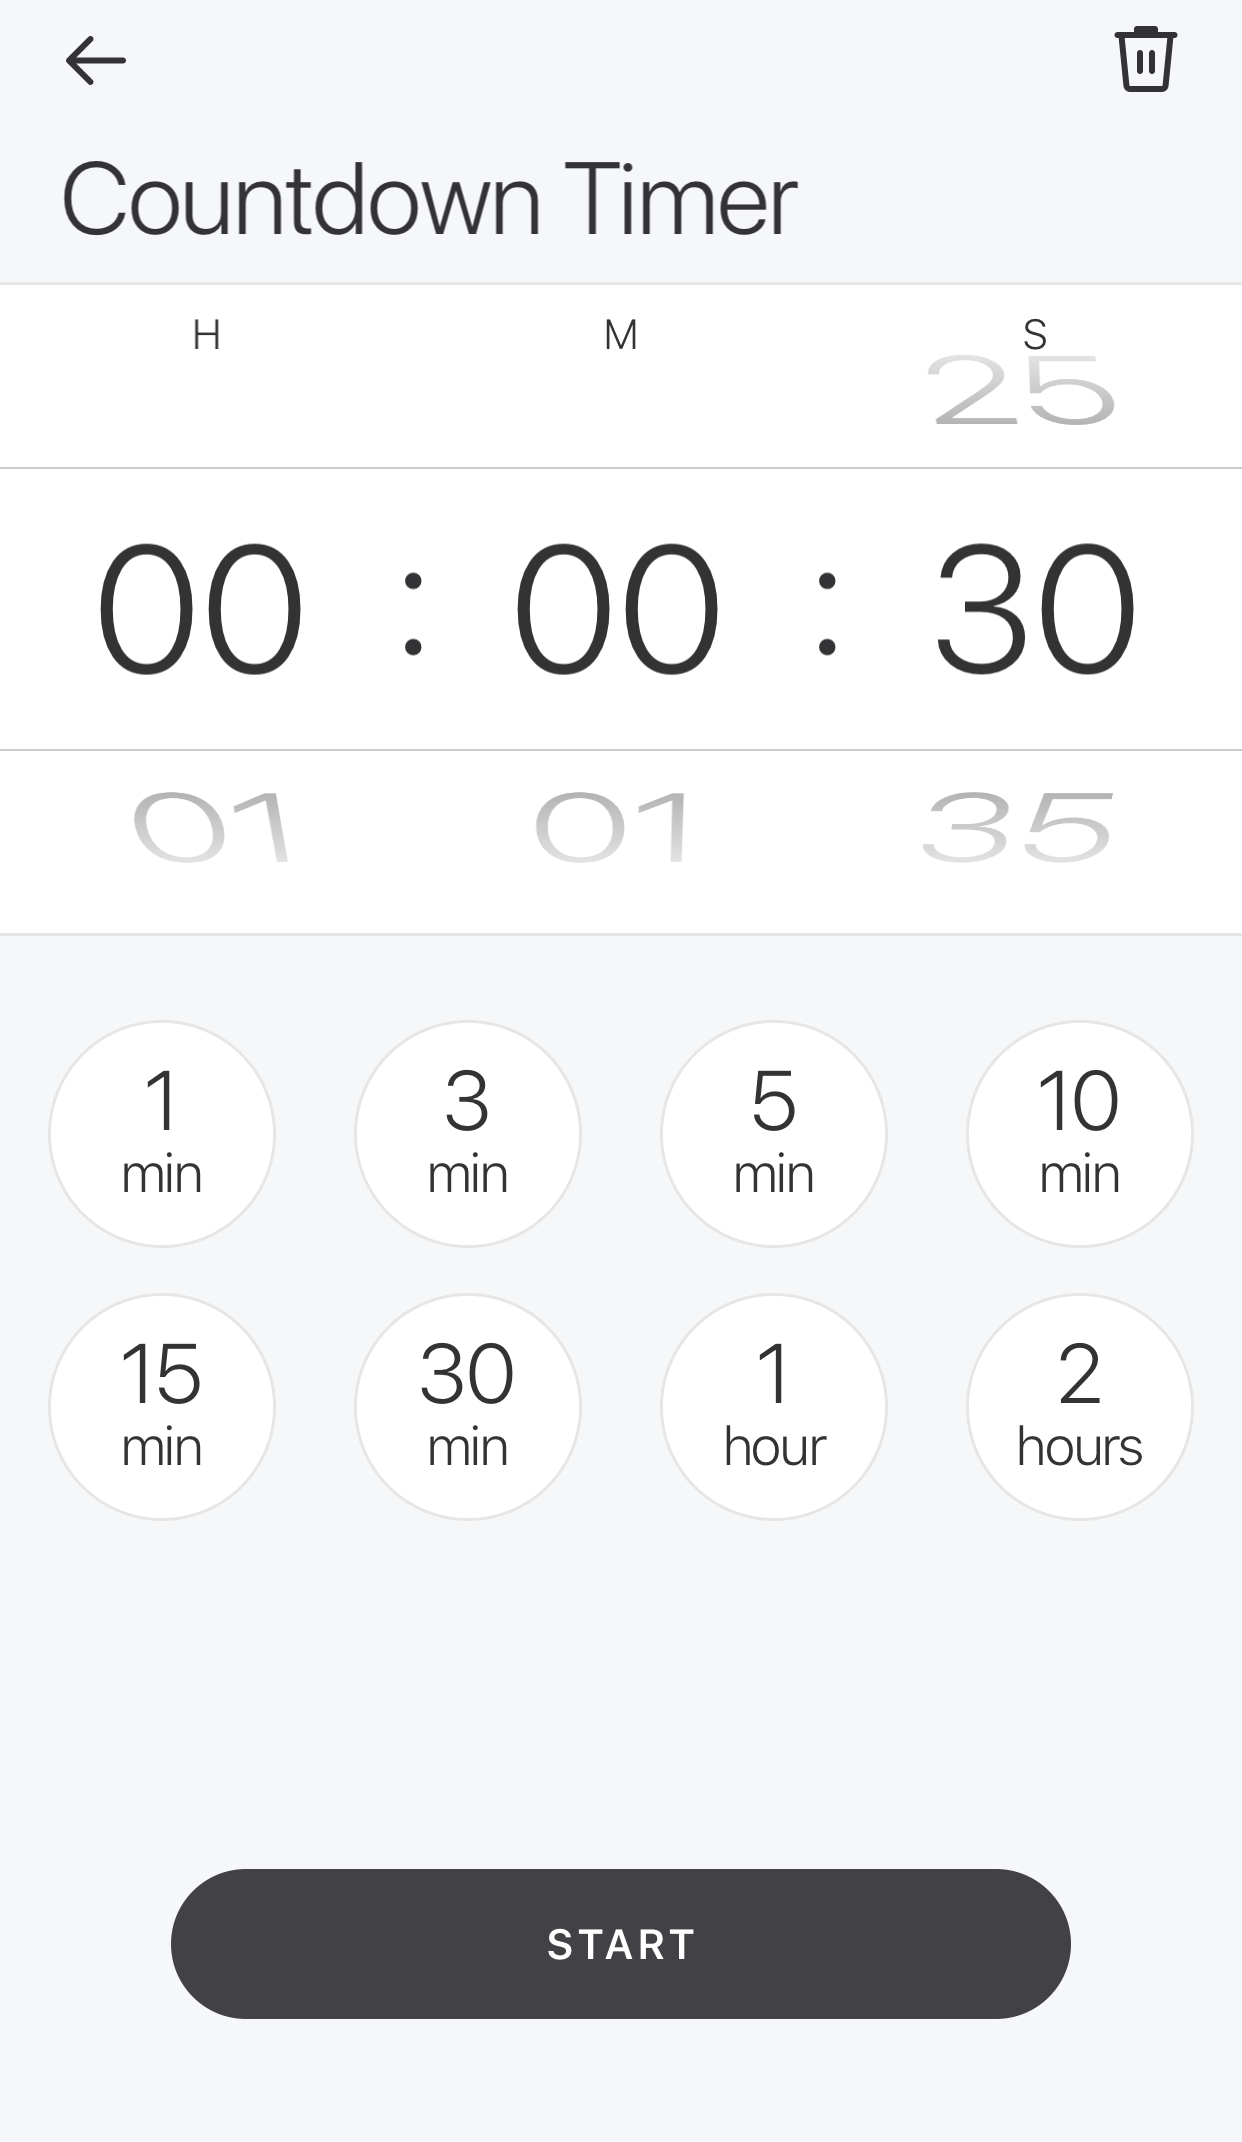 Glance App - Countdown Timer - Set time